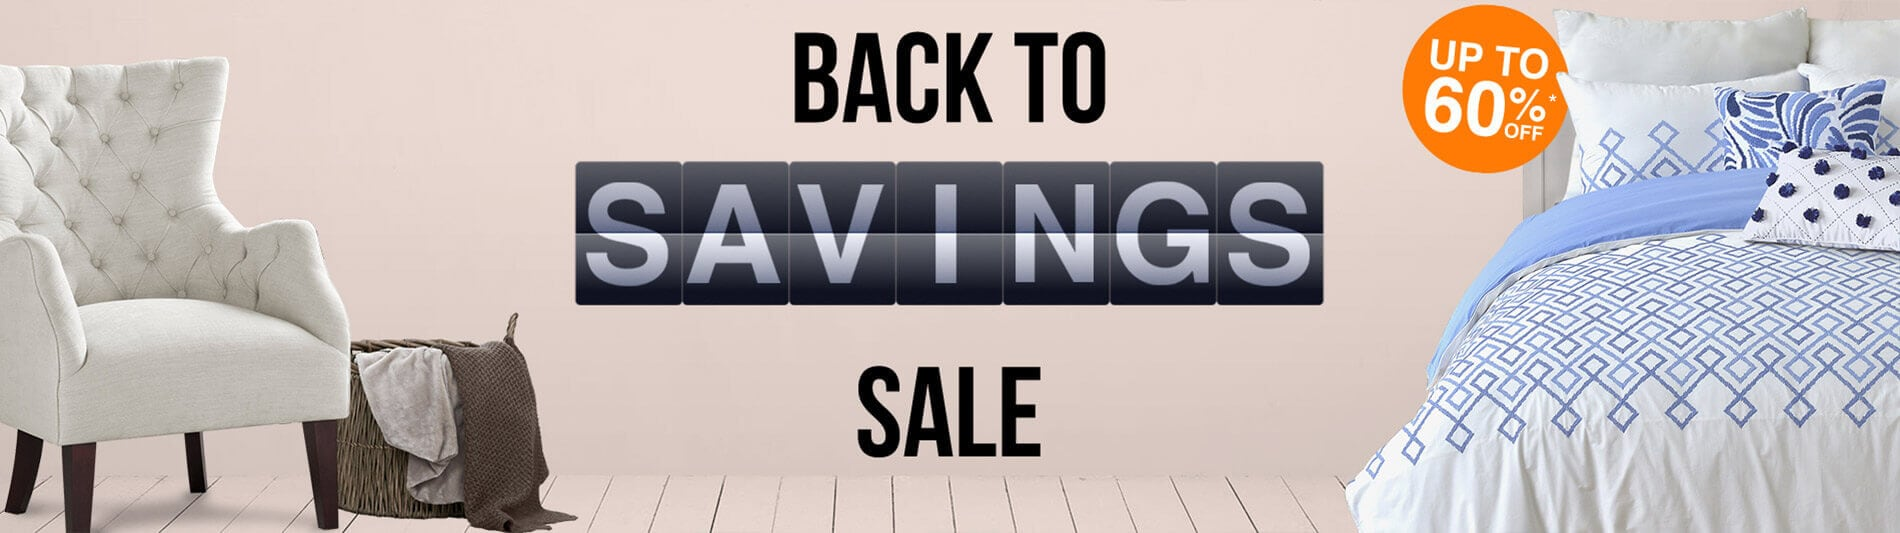 Back to Comfort sale banner - Up to 60% off*